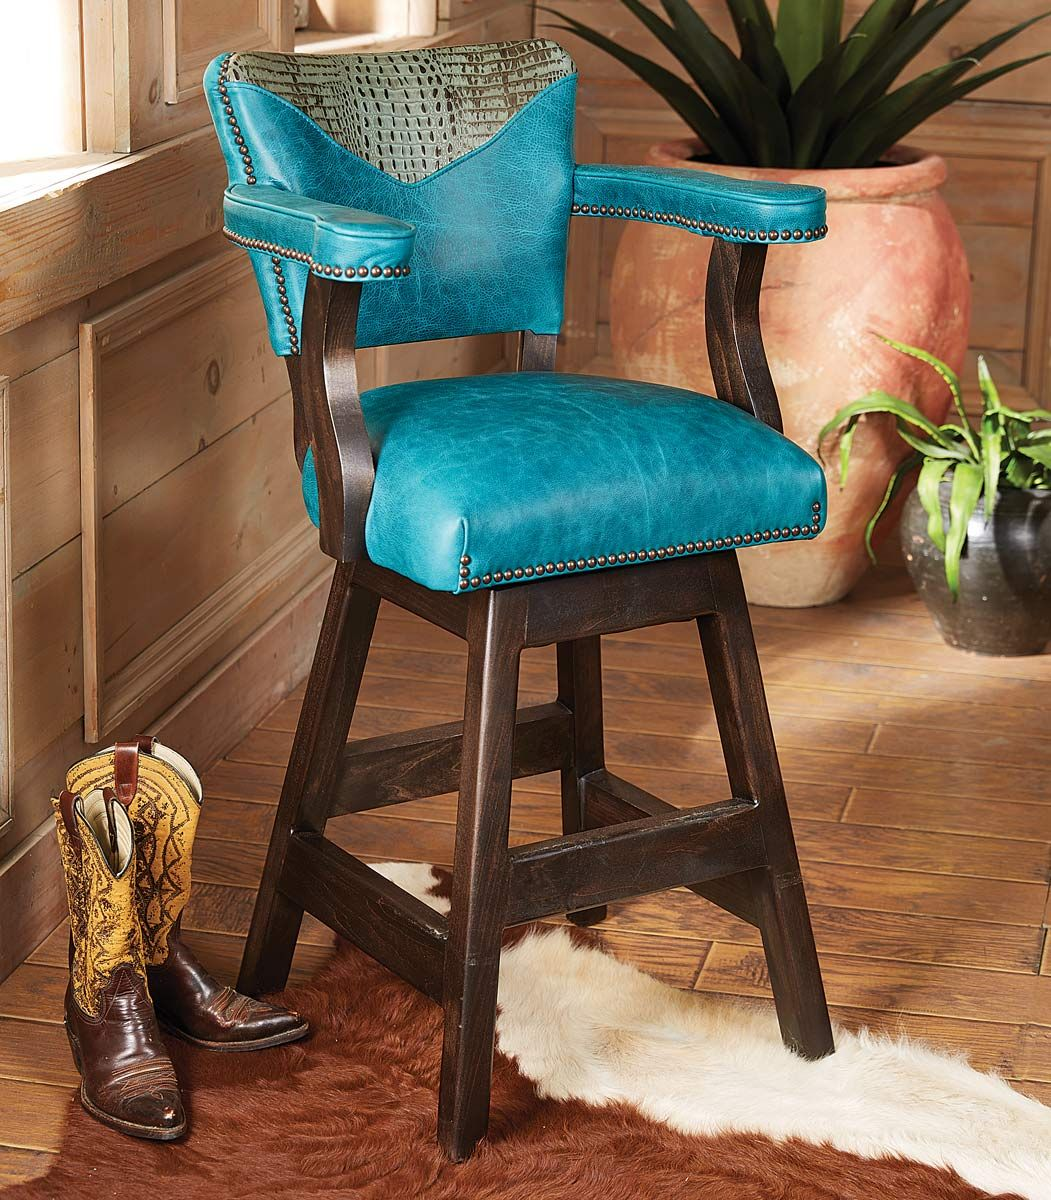 Laramie Plains Barstool with Turquoise Leather